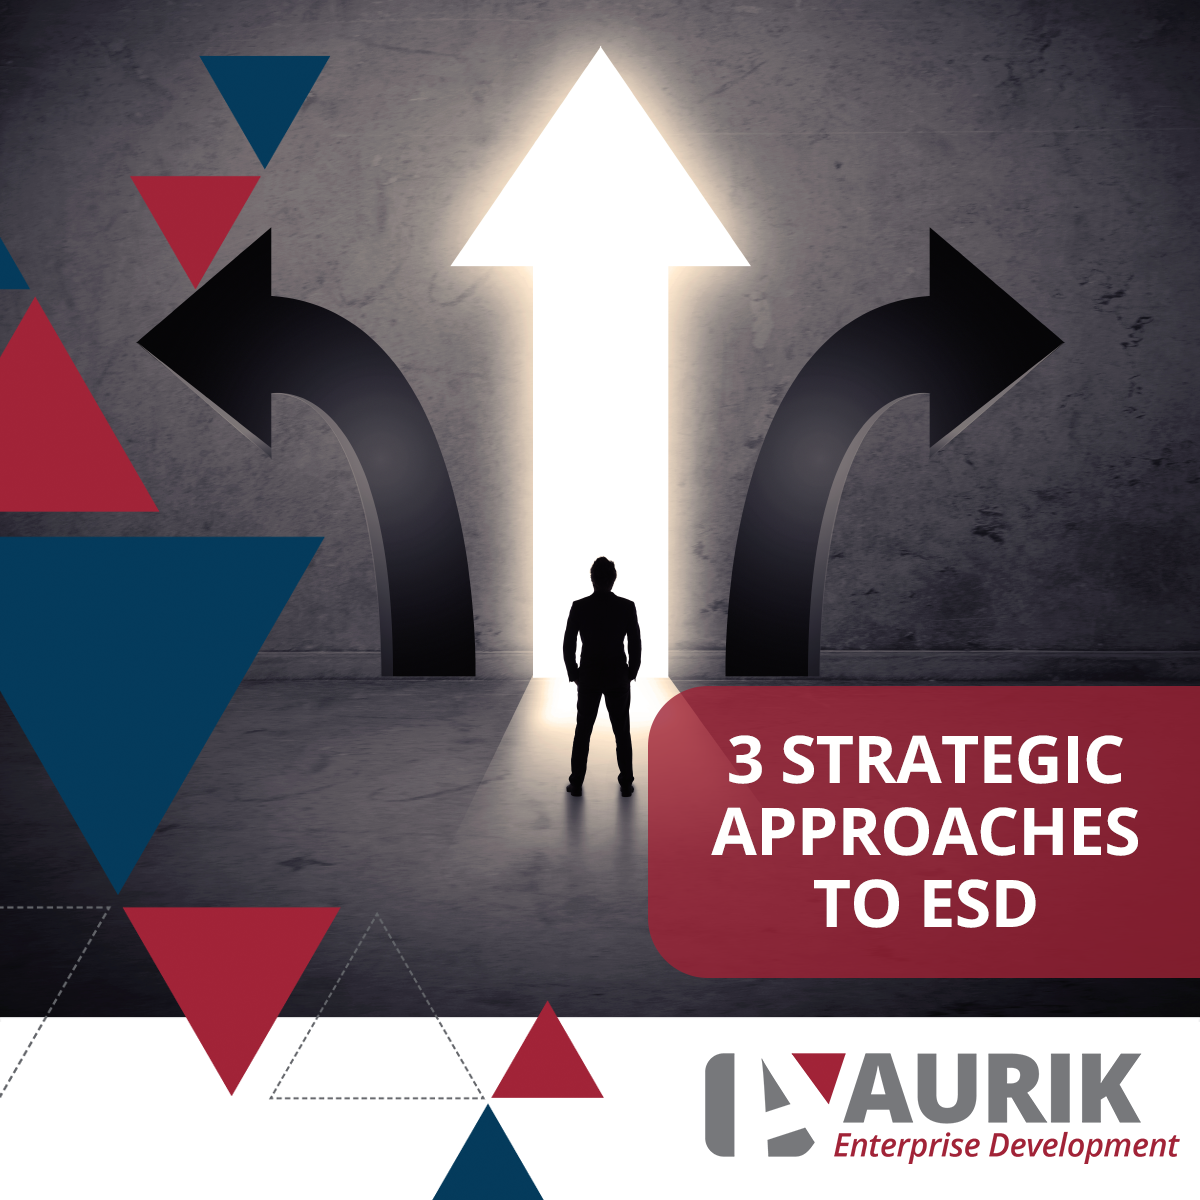 Three strategic approaches to ESD